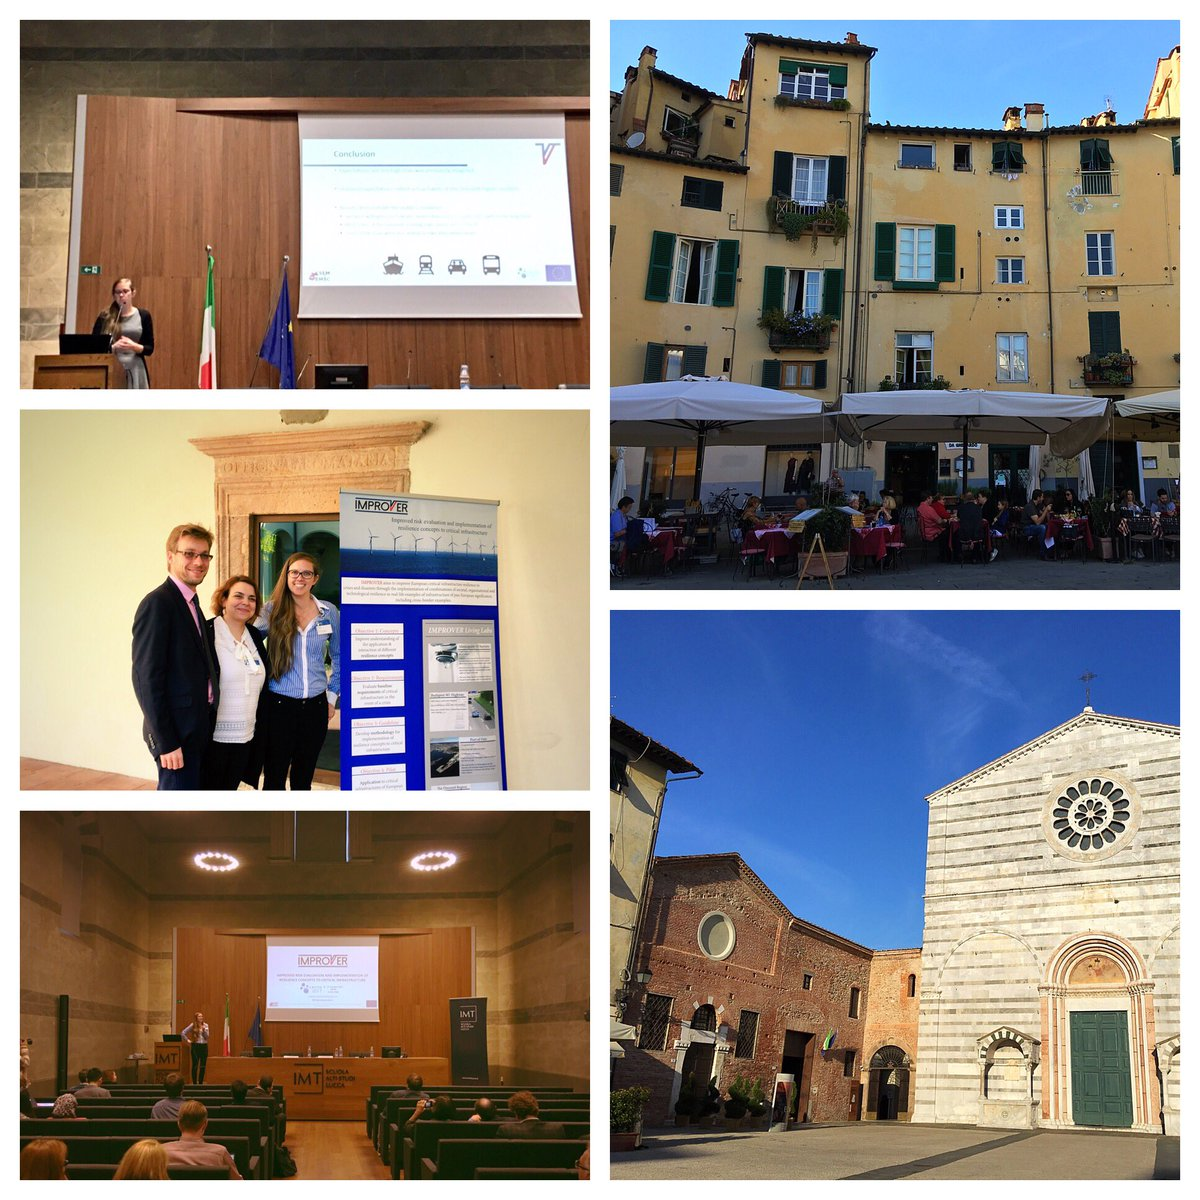 #CRITIS2017 was such a wonderful, prosecco filled experience! Lots of great talks about #resilience &amp; #criticalinfrastructure, too! <br>http://pic.twitter.com/4l22mzp3br